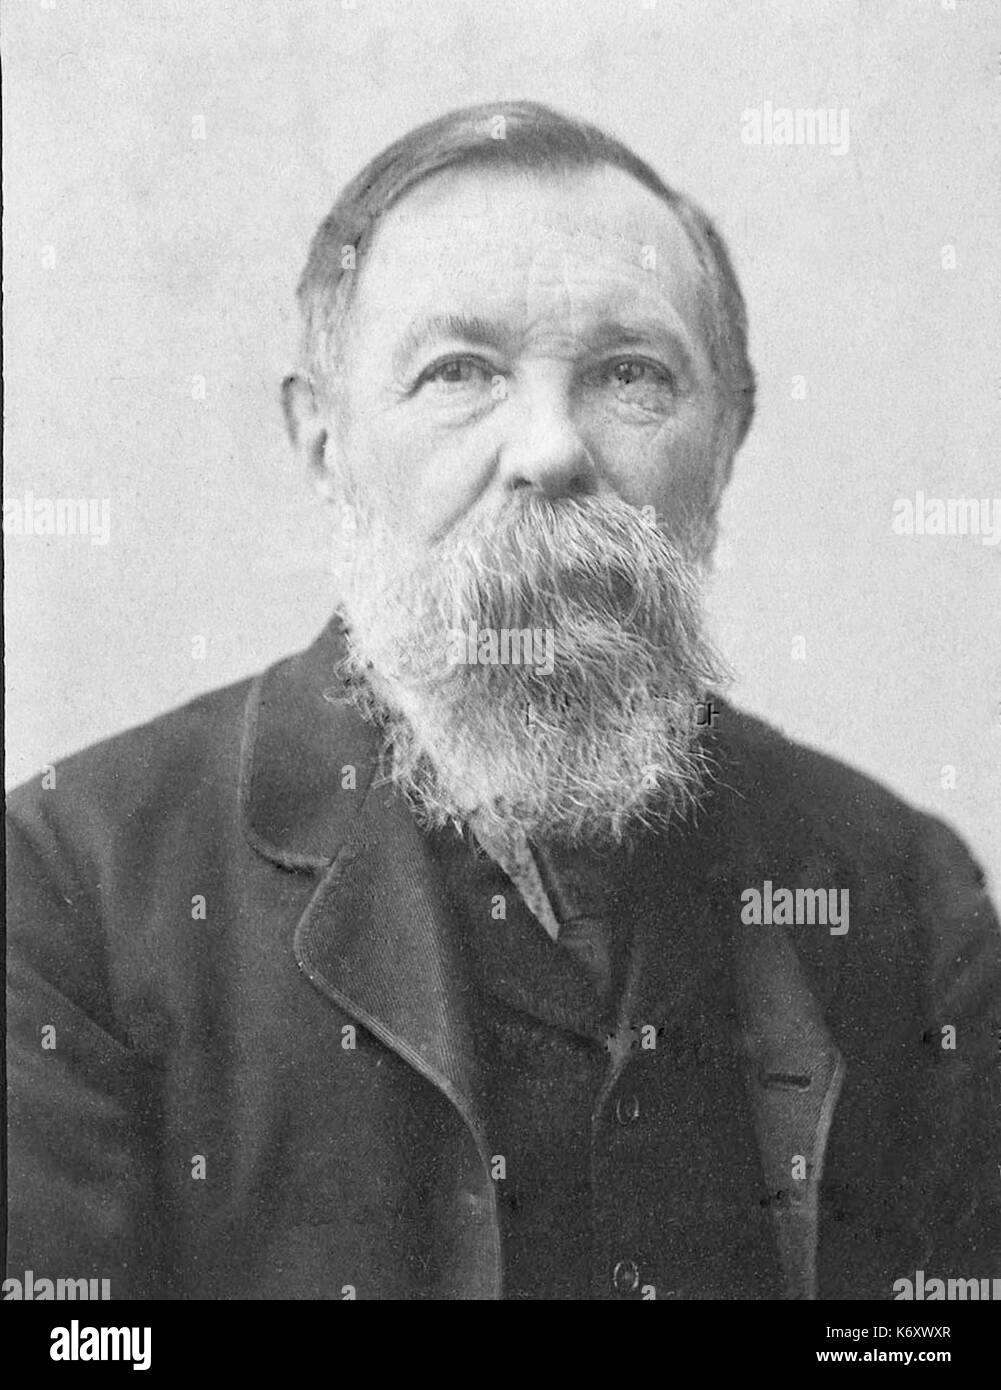 Friedrich Engels Old Stock Photo 159172351 Alamy